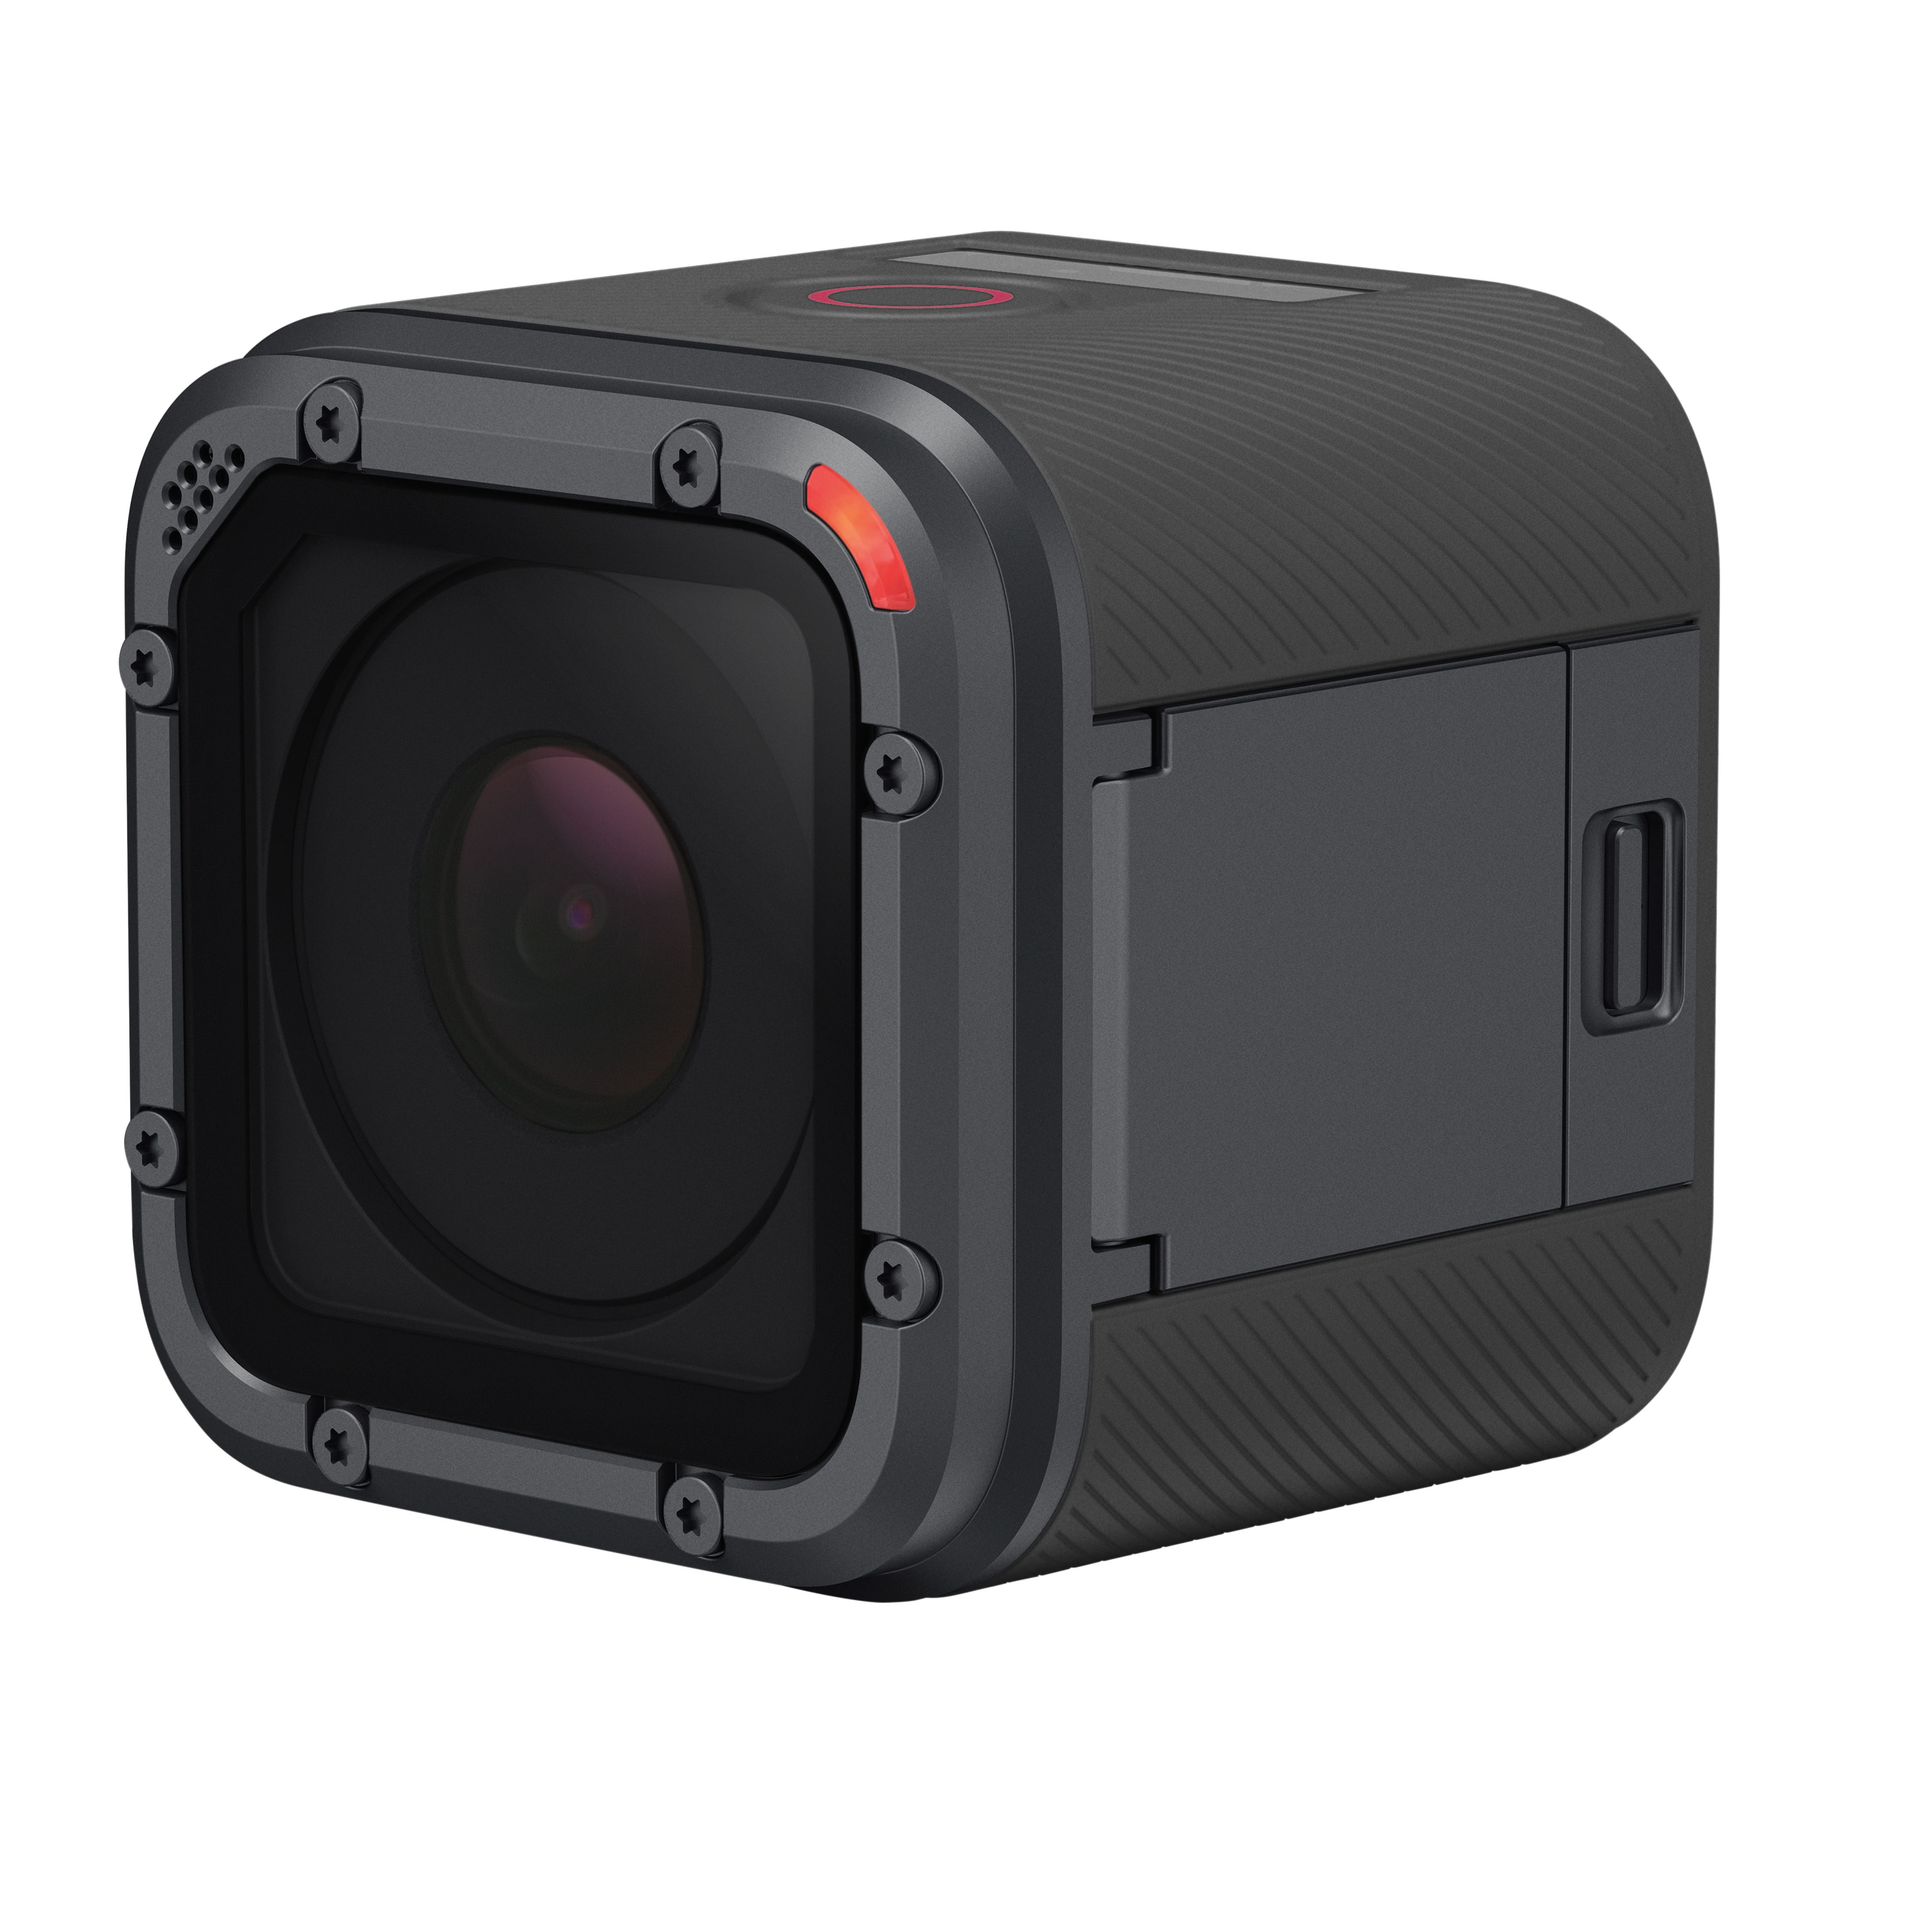 GoPro unveils HERO5 Black and HERO 5 Session cameras and GoPro Plus  subscription service: Digital Photography Review